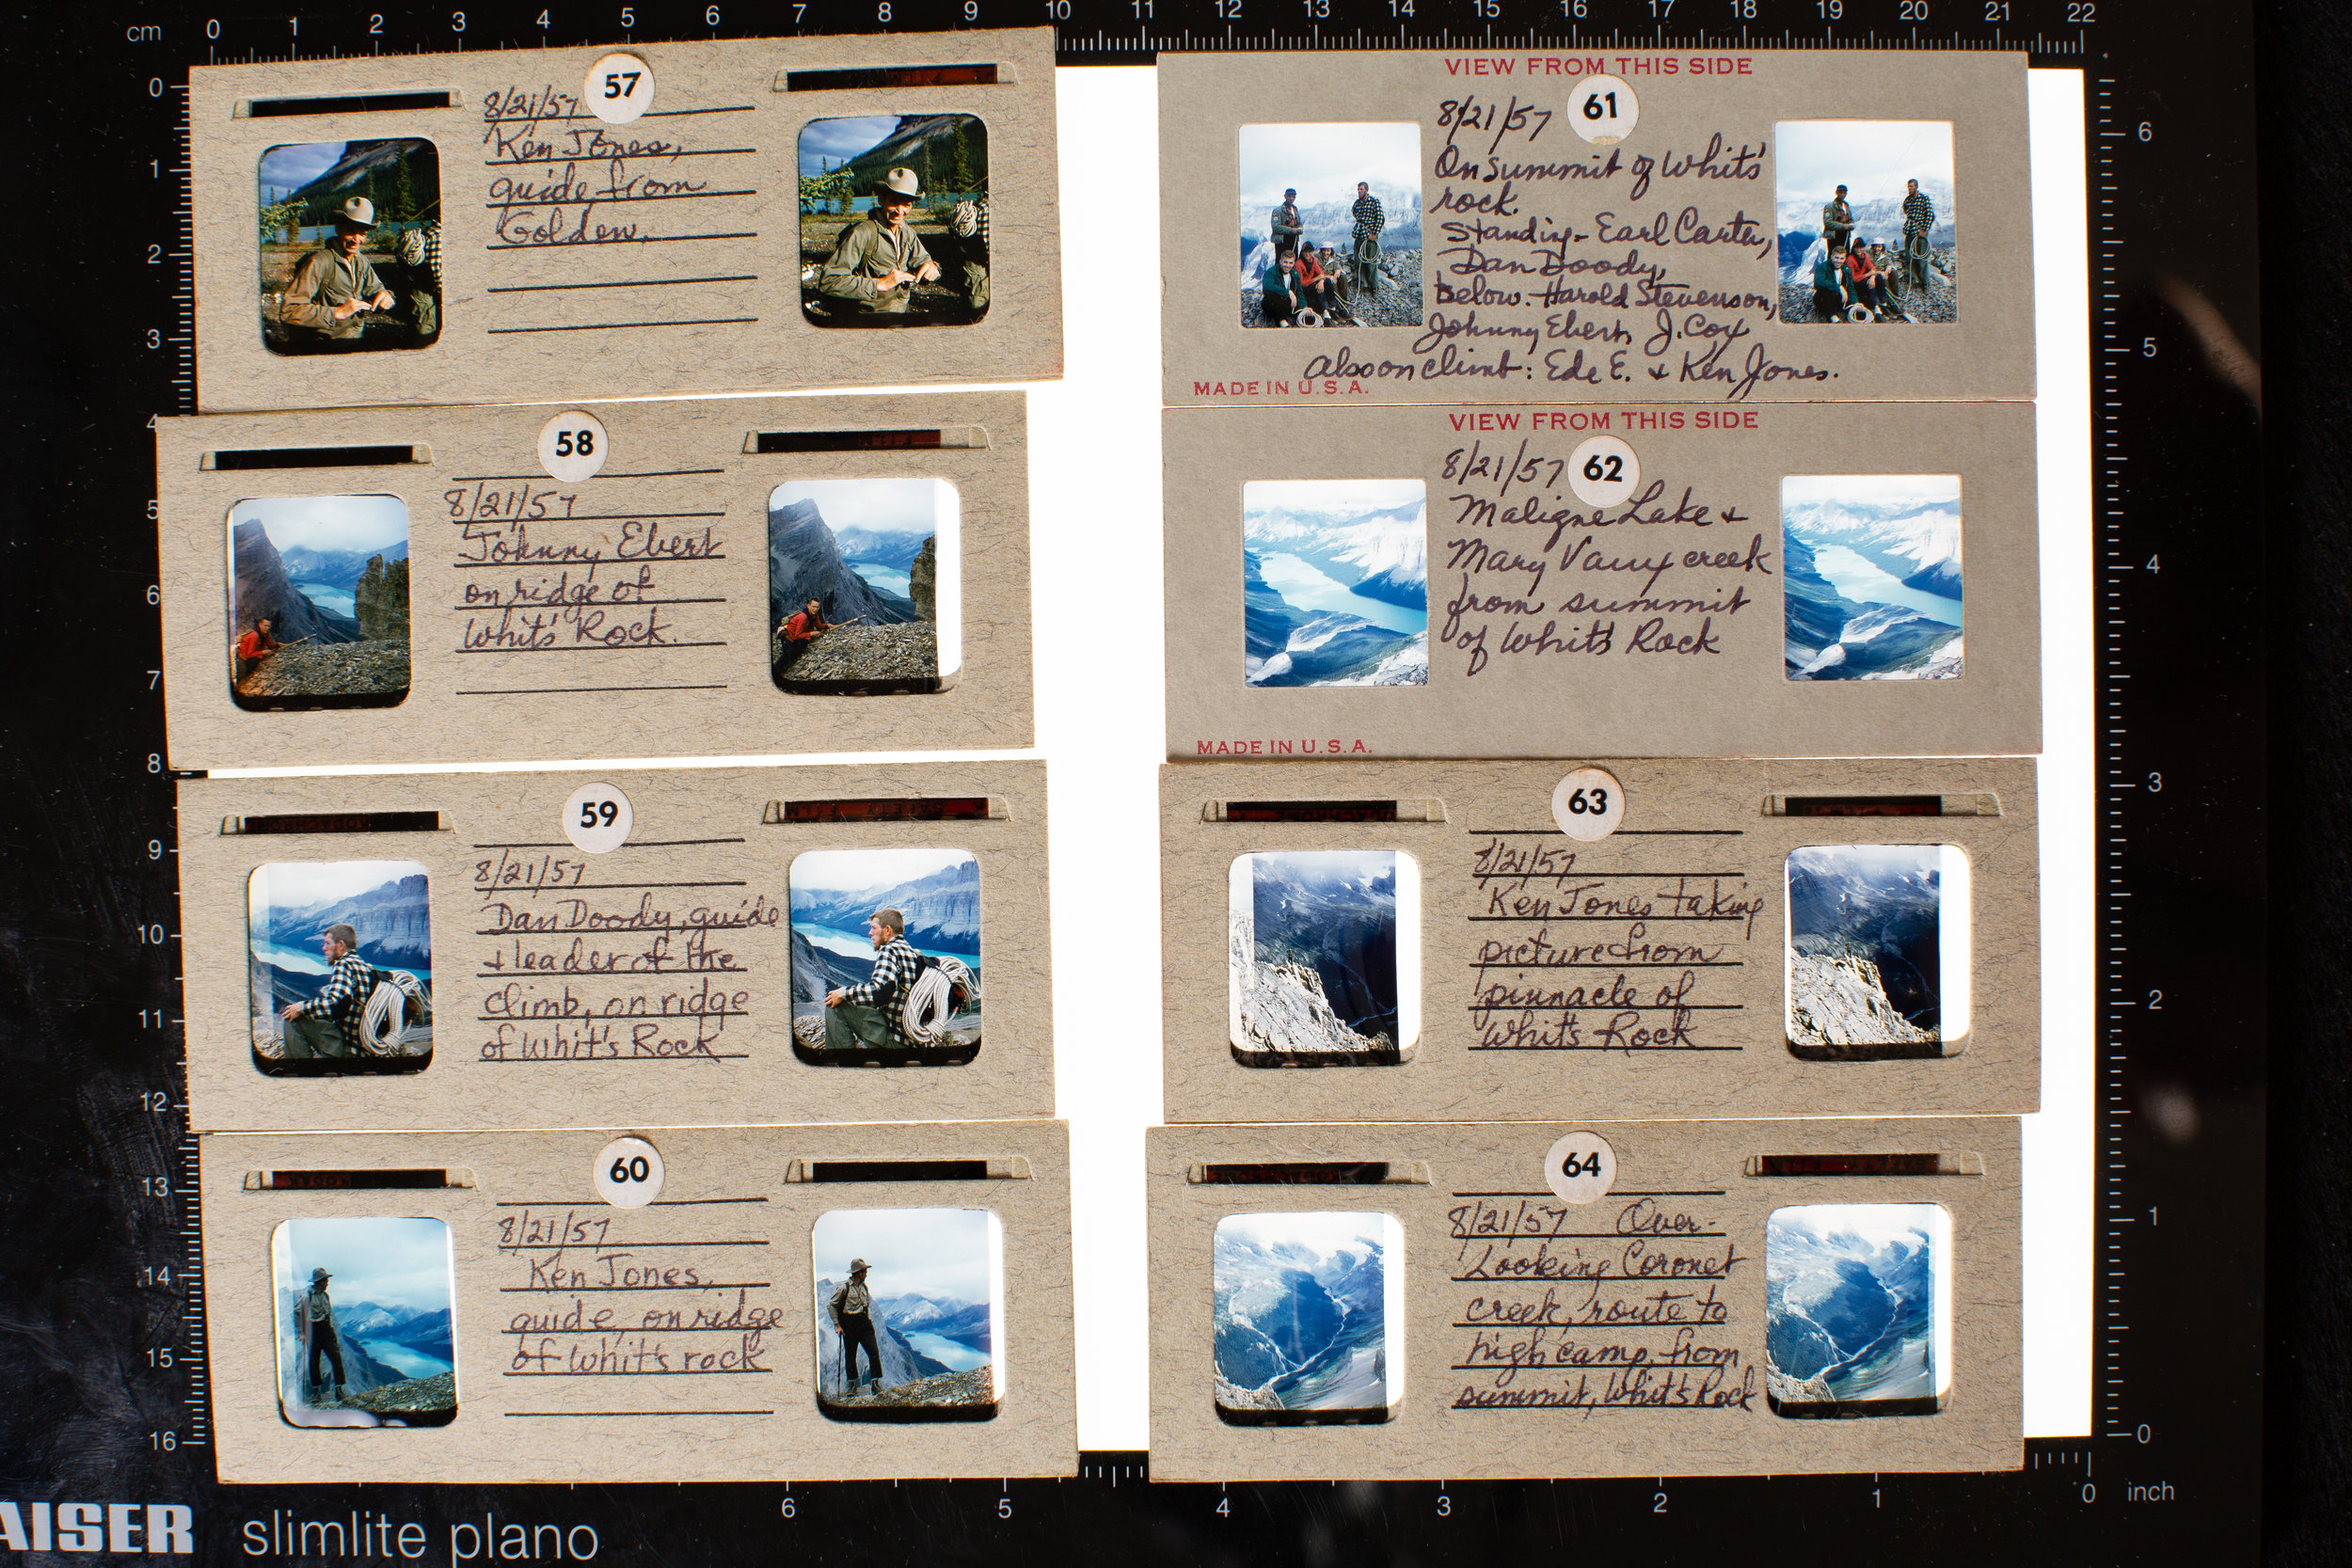 Stereo slides from the collection of Joan Cox from the Maligne Lake expedition in 1957. Includes Ken Jones, a Canadian guide who was deaf, as well as  Dan Doody  who would be a member of the first successful American expedition to Mount Everest.